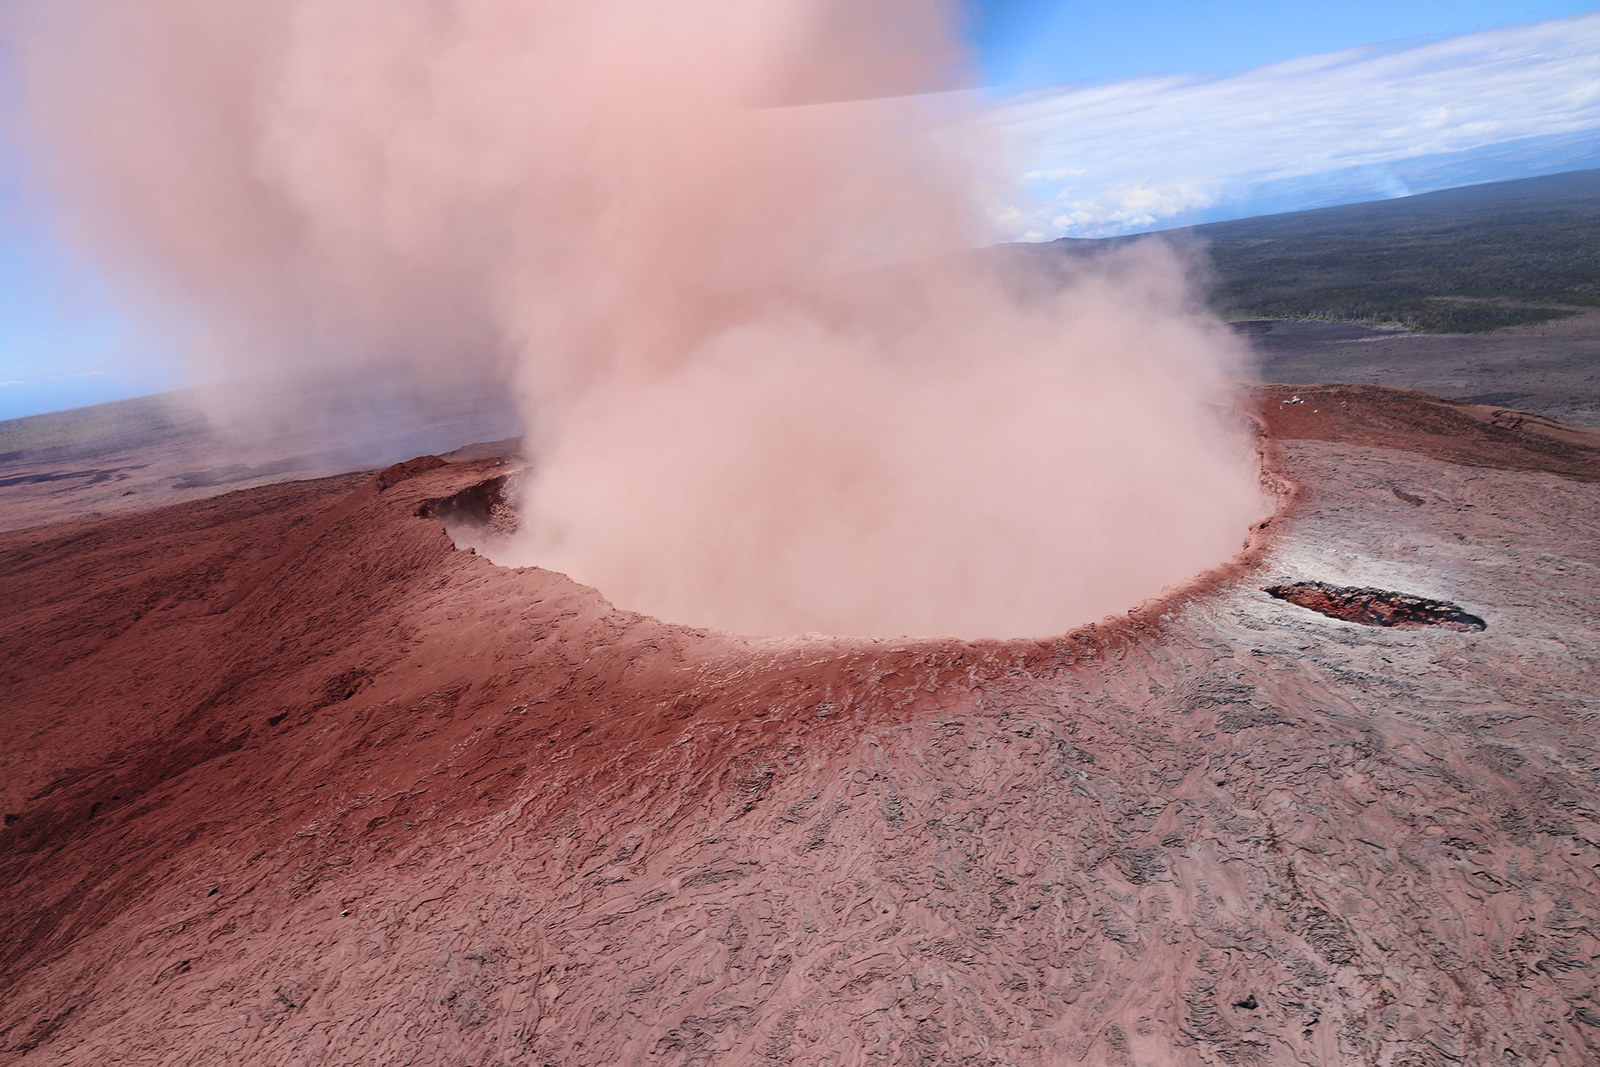 Ash spews from the Puu Oo crater on Hawaii's Kilauea volcano on May 3.